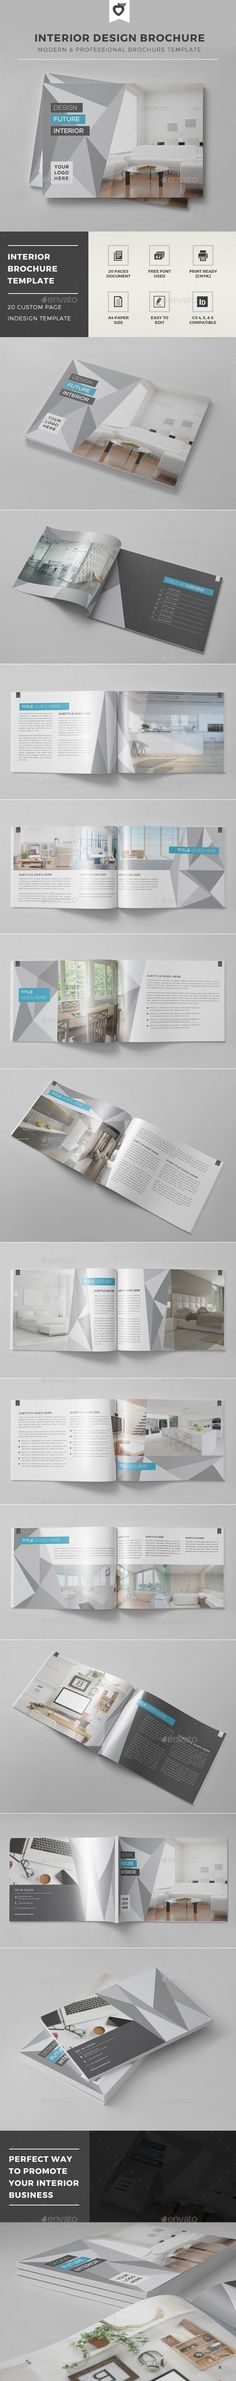 Interior Design Brochure Template #design Download: http://graphicriver.net/item/interior-design-brochure-template/12474610?ref=ksioks